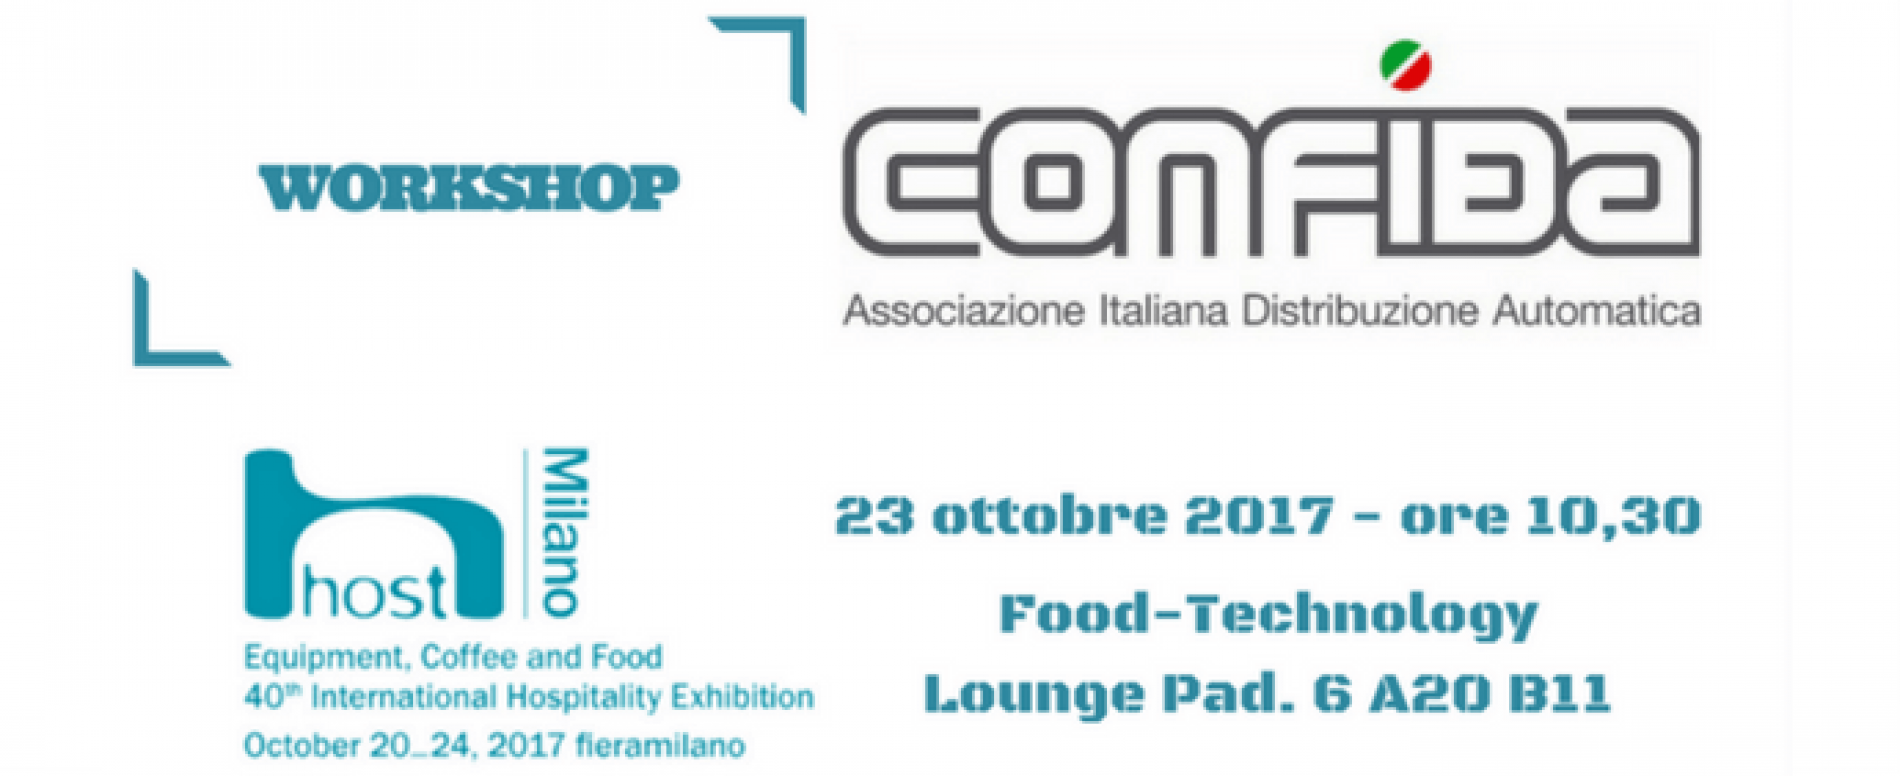 Workshop CONFIDA a Host sulle nuove tecnologie del Vending